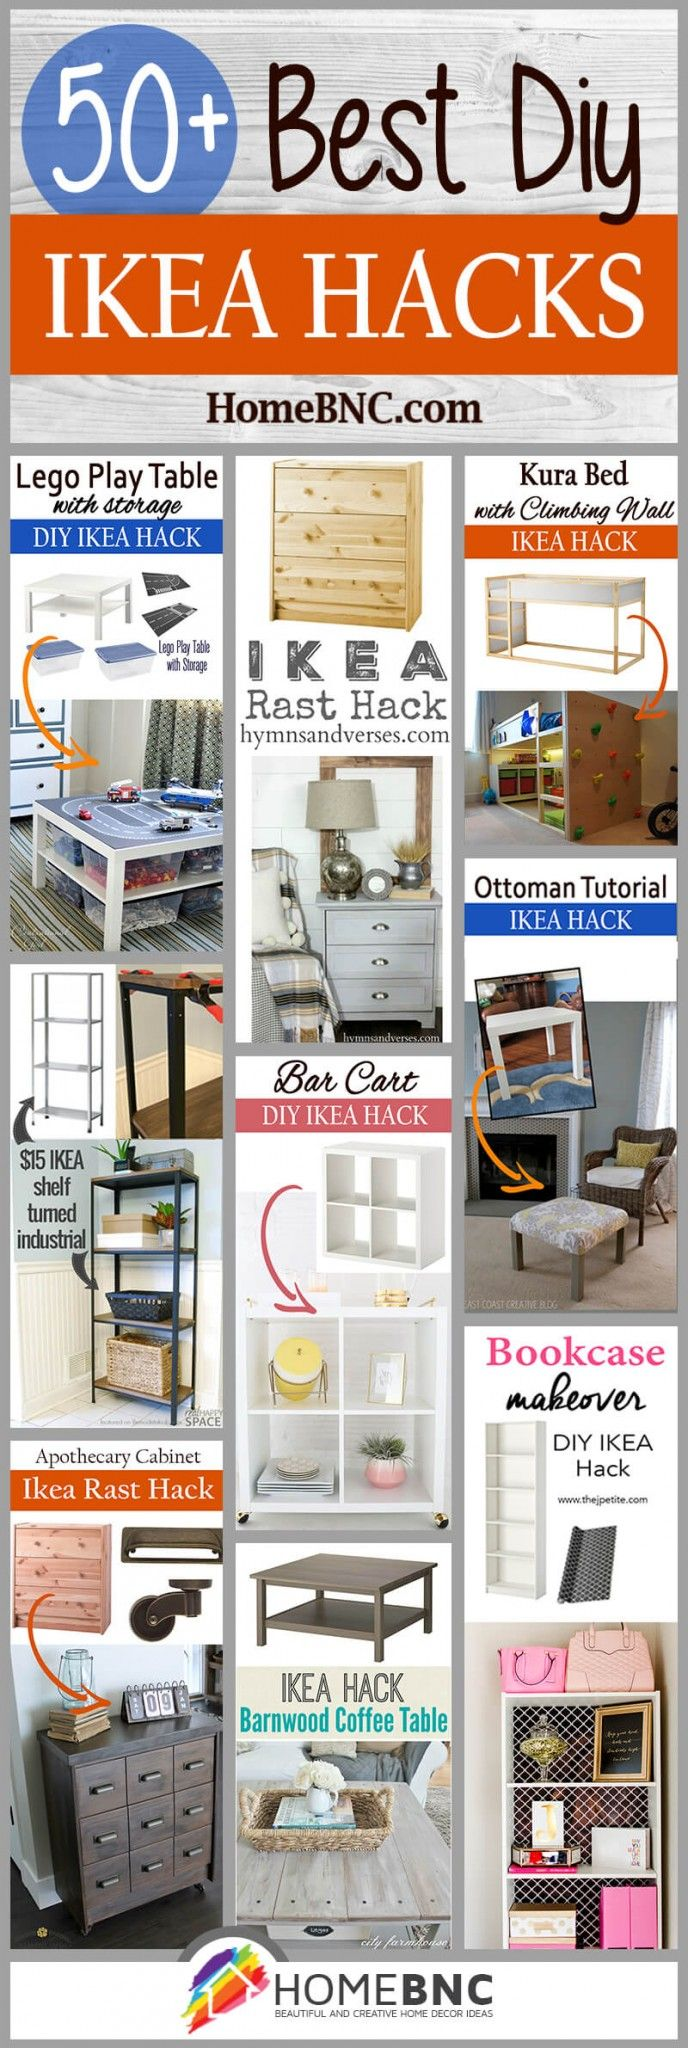 Ikea Möbel Pimpen Blog Ikea Hack Ideas | Ikea Hacks | Pinterest | Ikea, Möbel Und